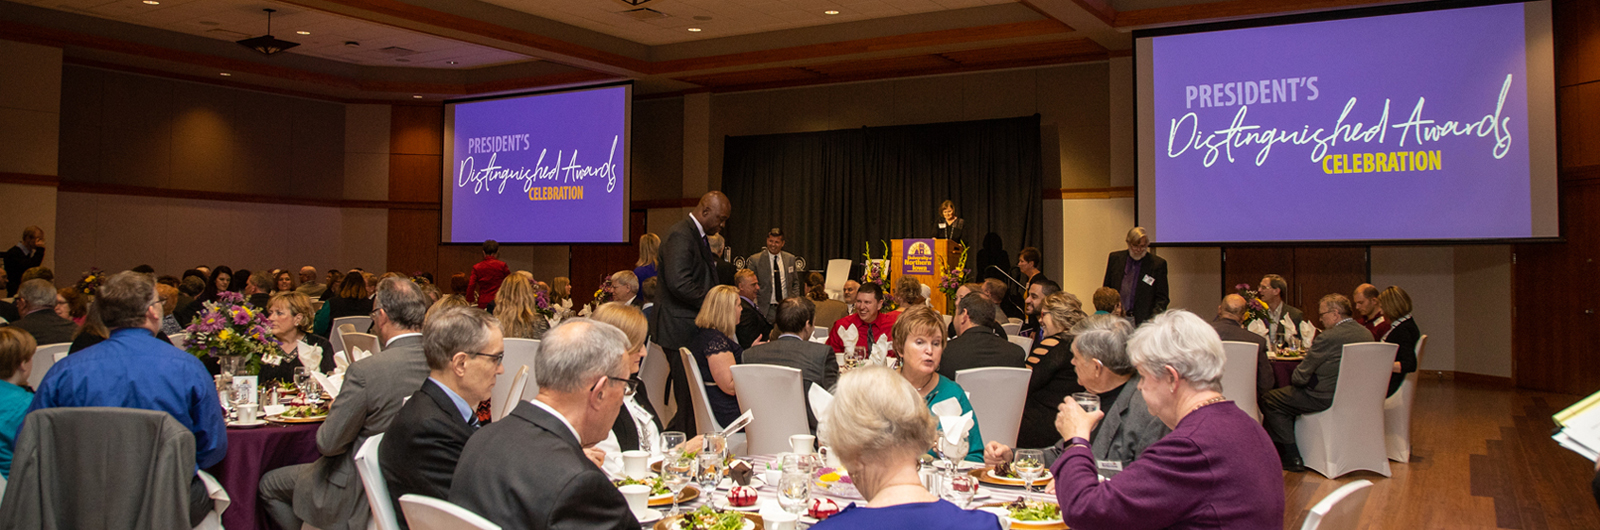 President's Distinguished Awards Celebration